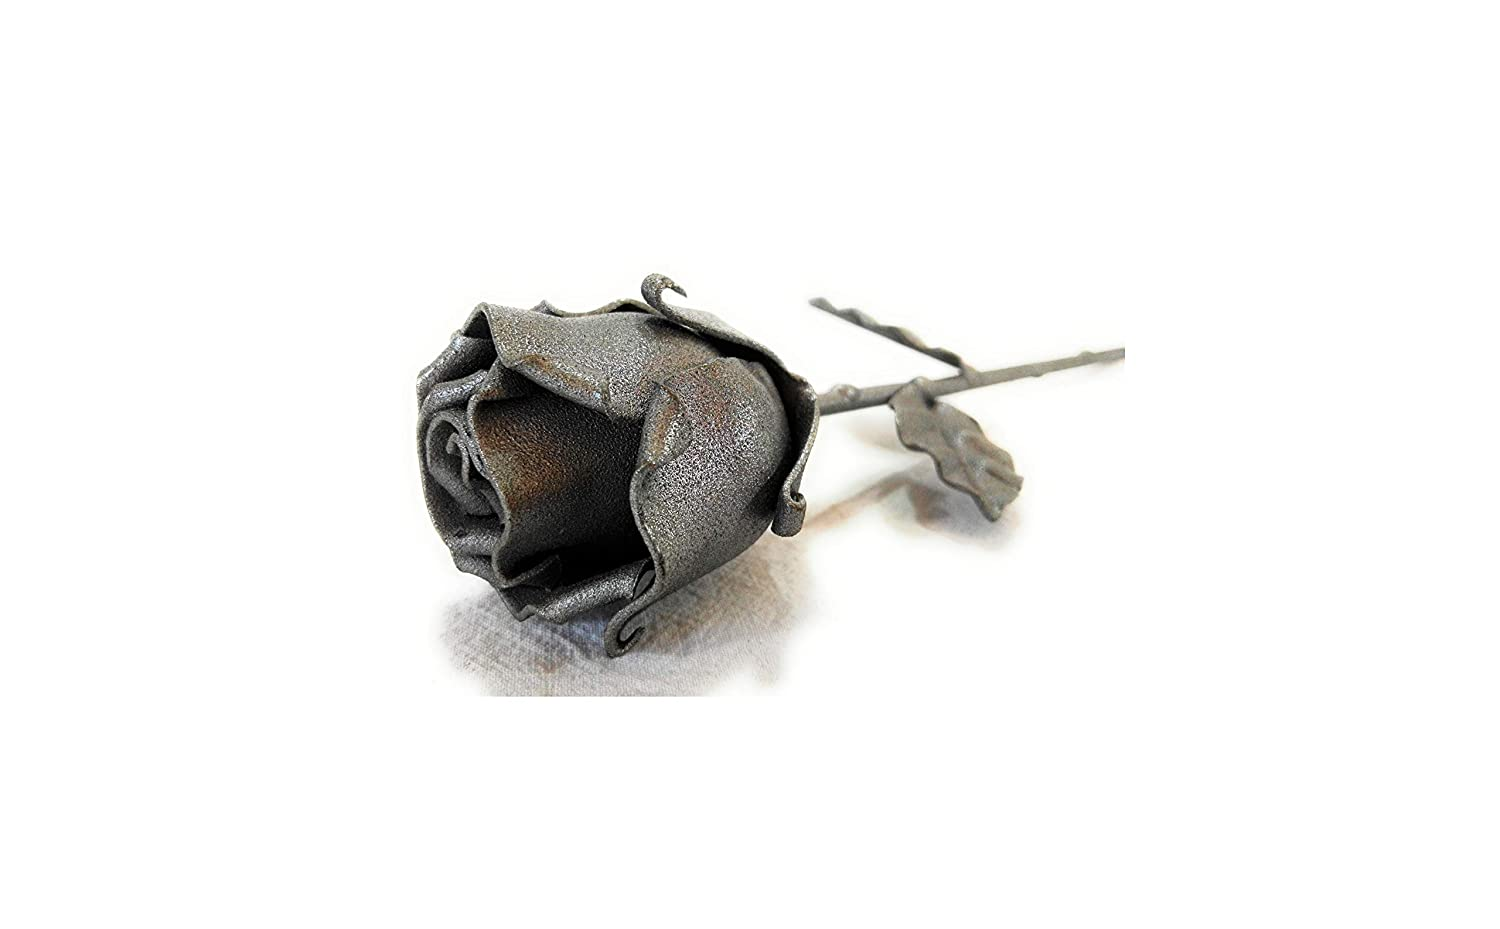 Eternal Rose Hand-Forged Wrought Iron Gray Ideal gift for Valentine's Day, Mother's Day, Couple, Birthday, Christmas, Wedding Day, Anniversary, Decor, Indoor/Outdoor Mother's Day